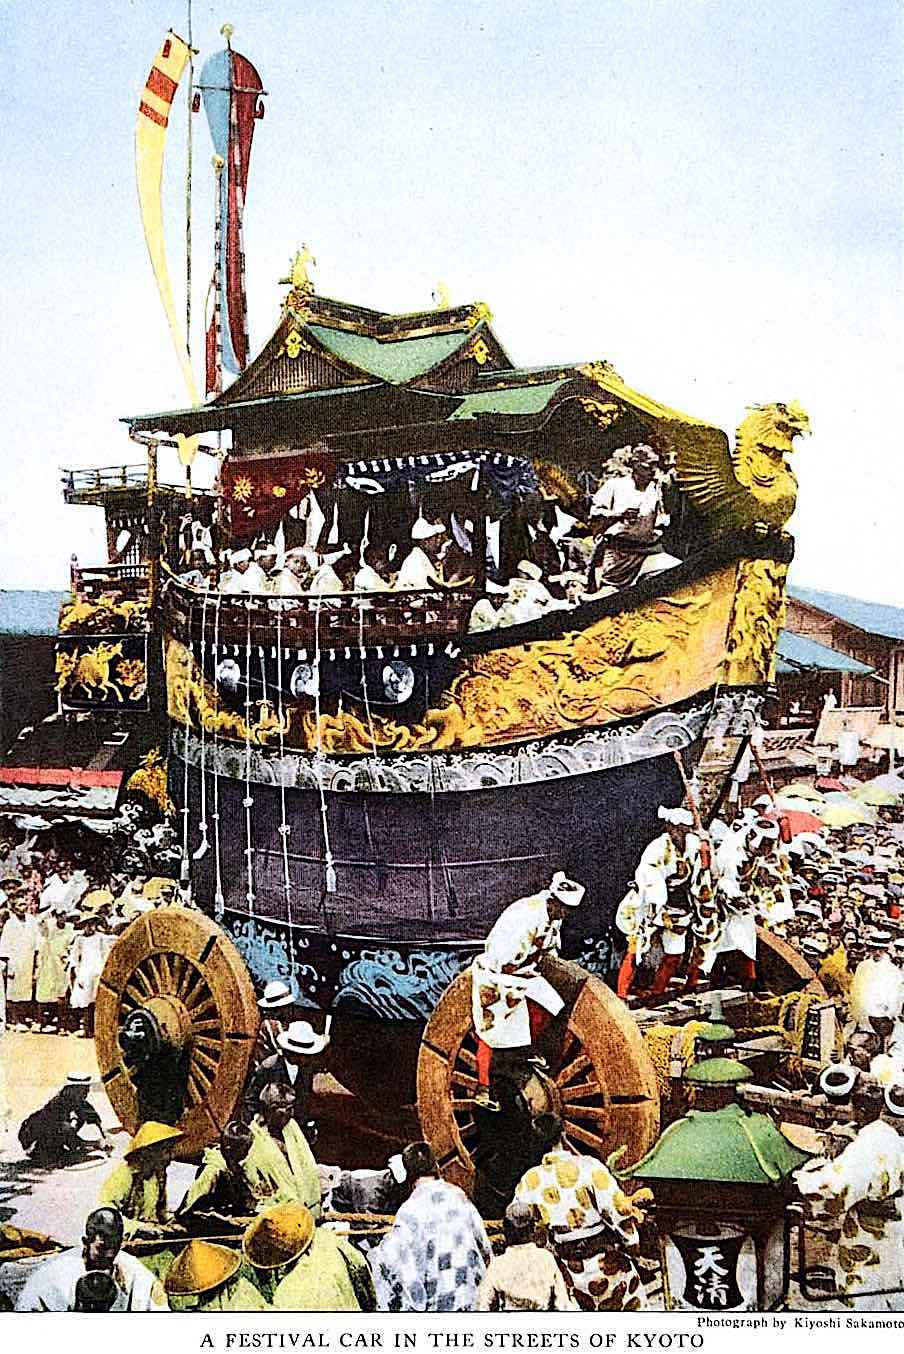 A festival car in the streets of Kyoto, a 1921 color tinted photograph